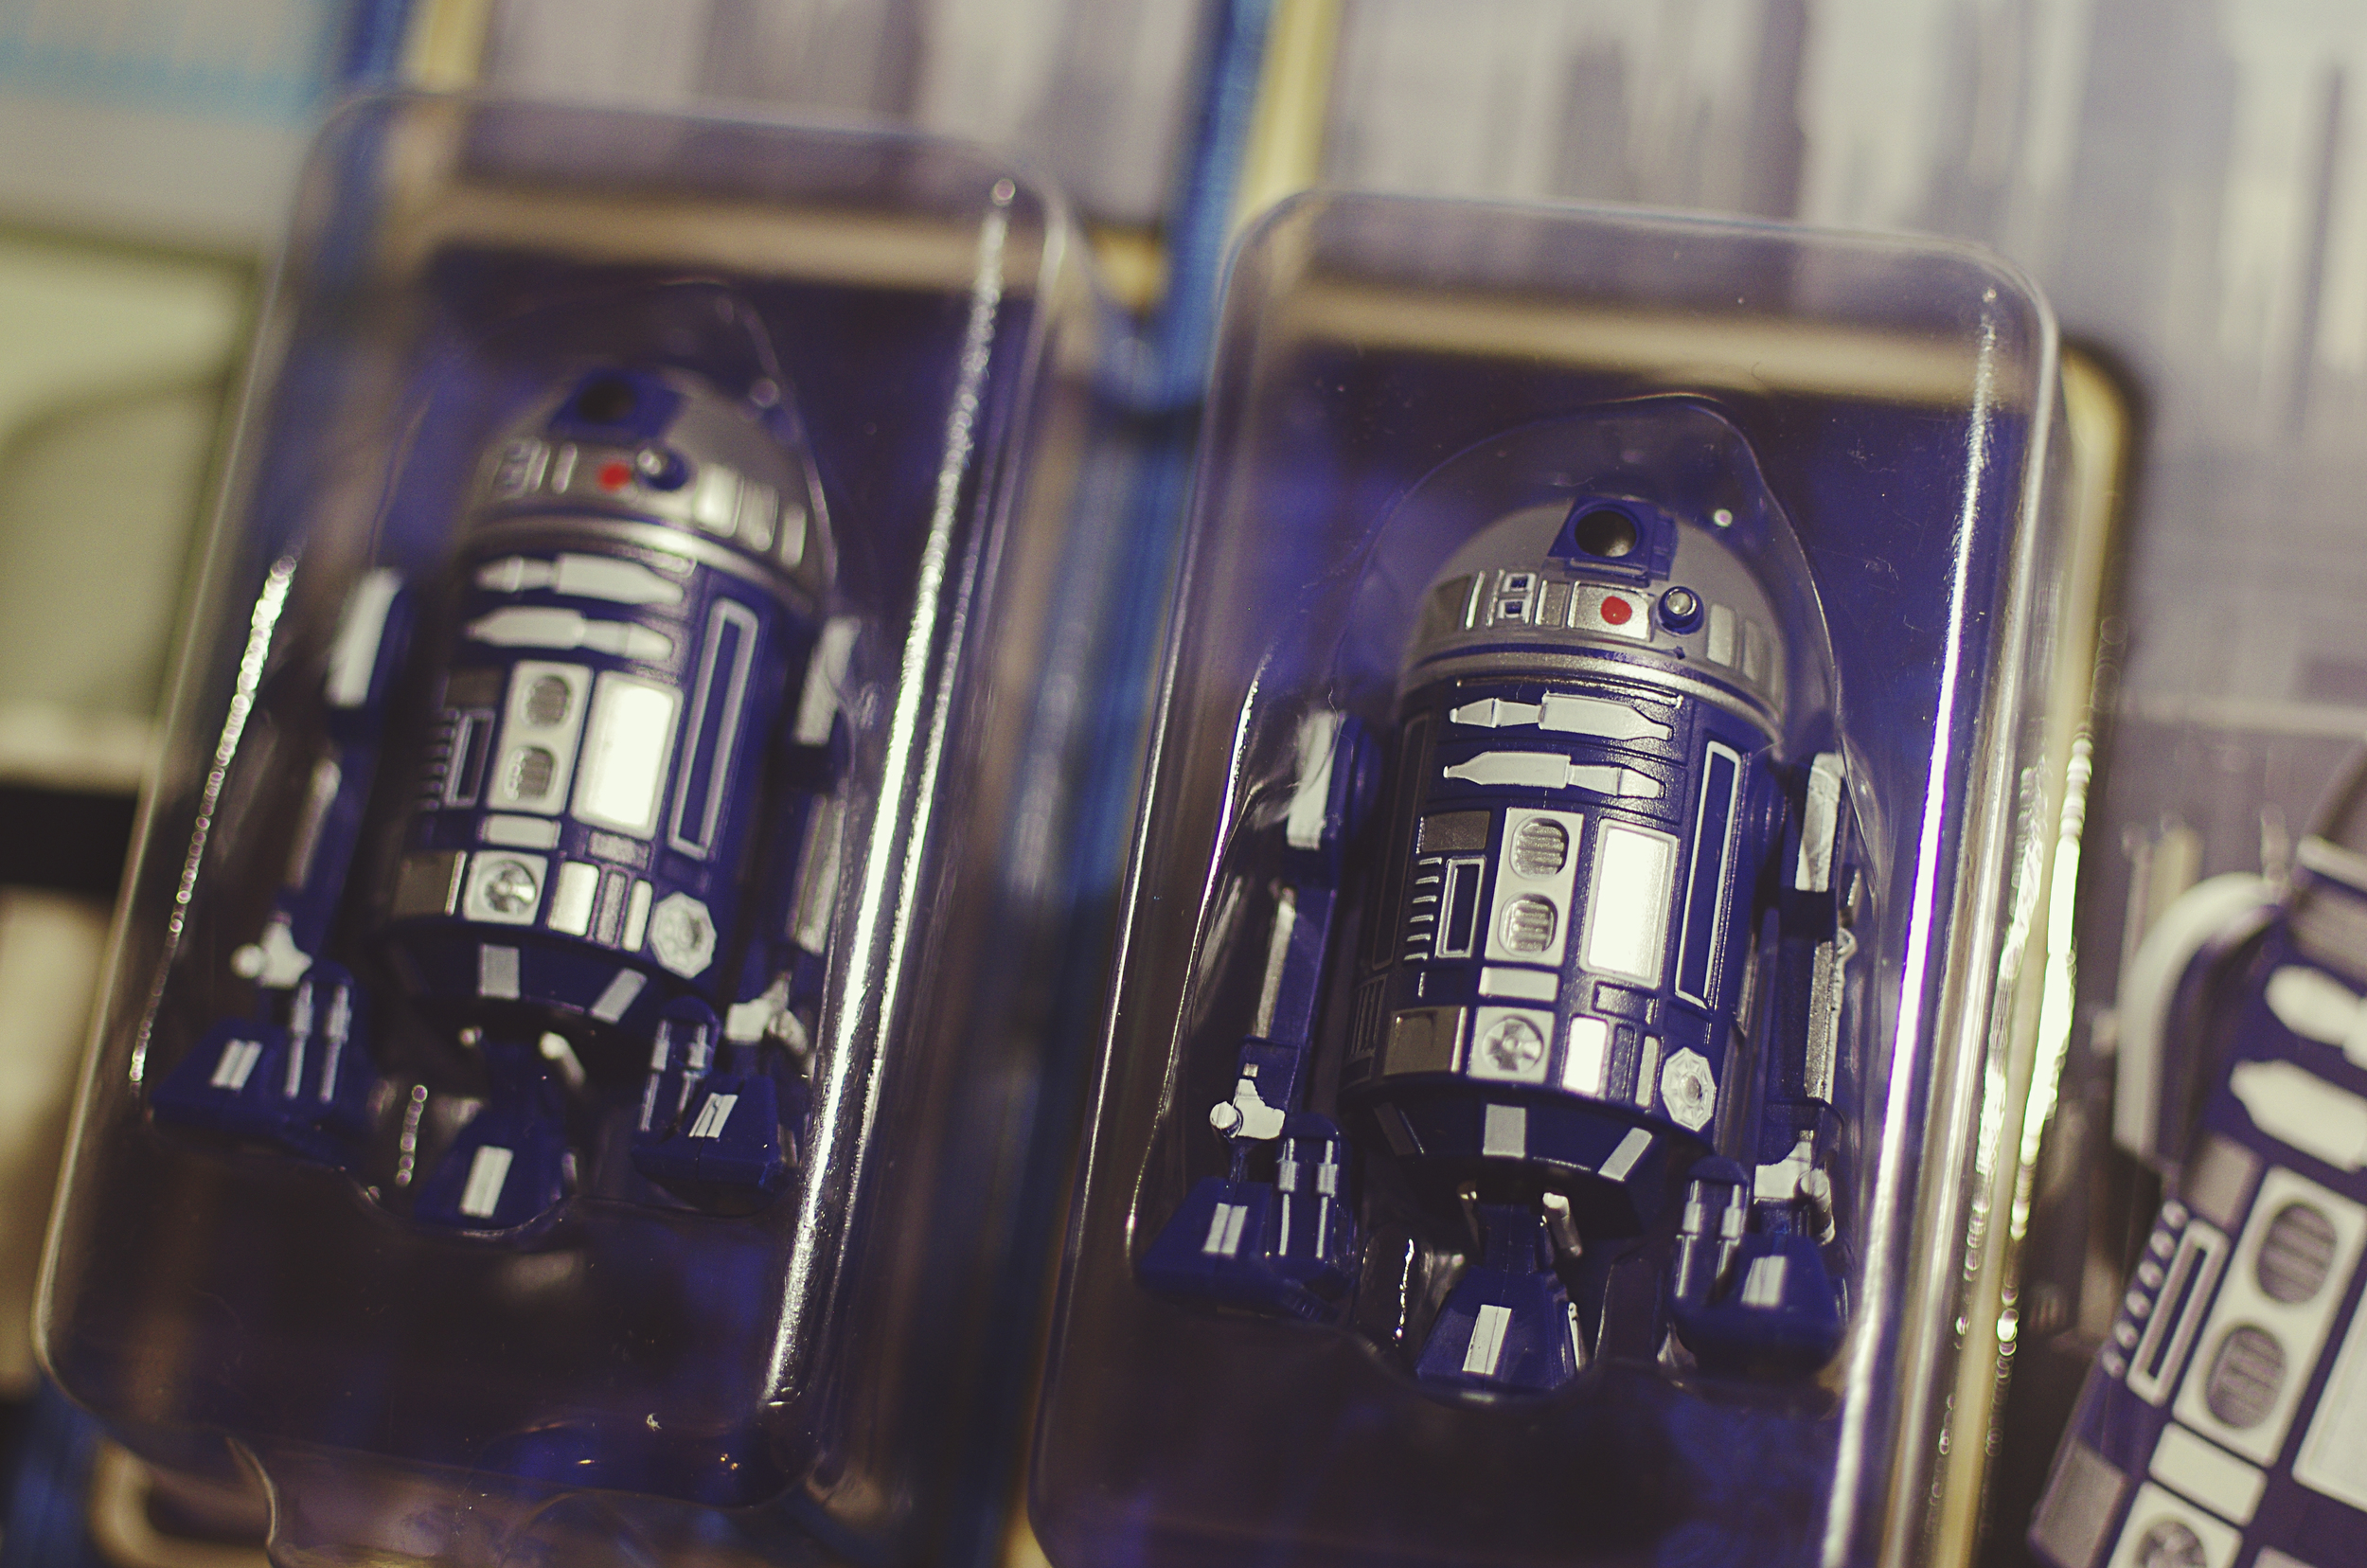 We snagged the limited R2-D60 for the Diamond Celebration. Only 6,000 were made and currently I think there are about 5,598 still hanging on racks at Disneyland.